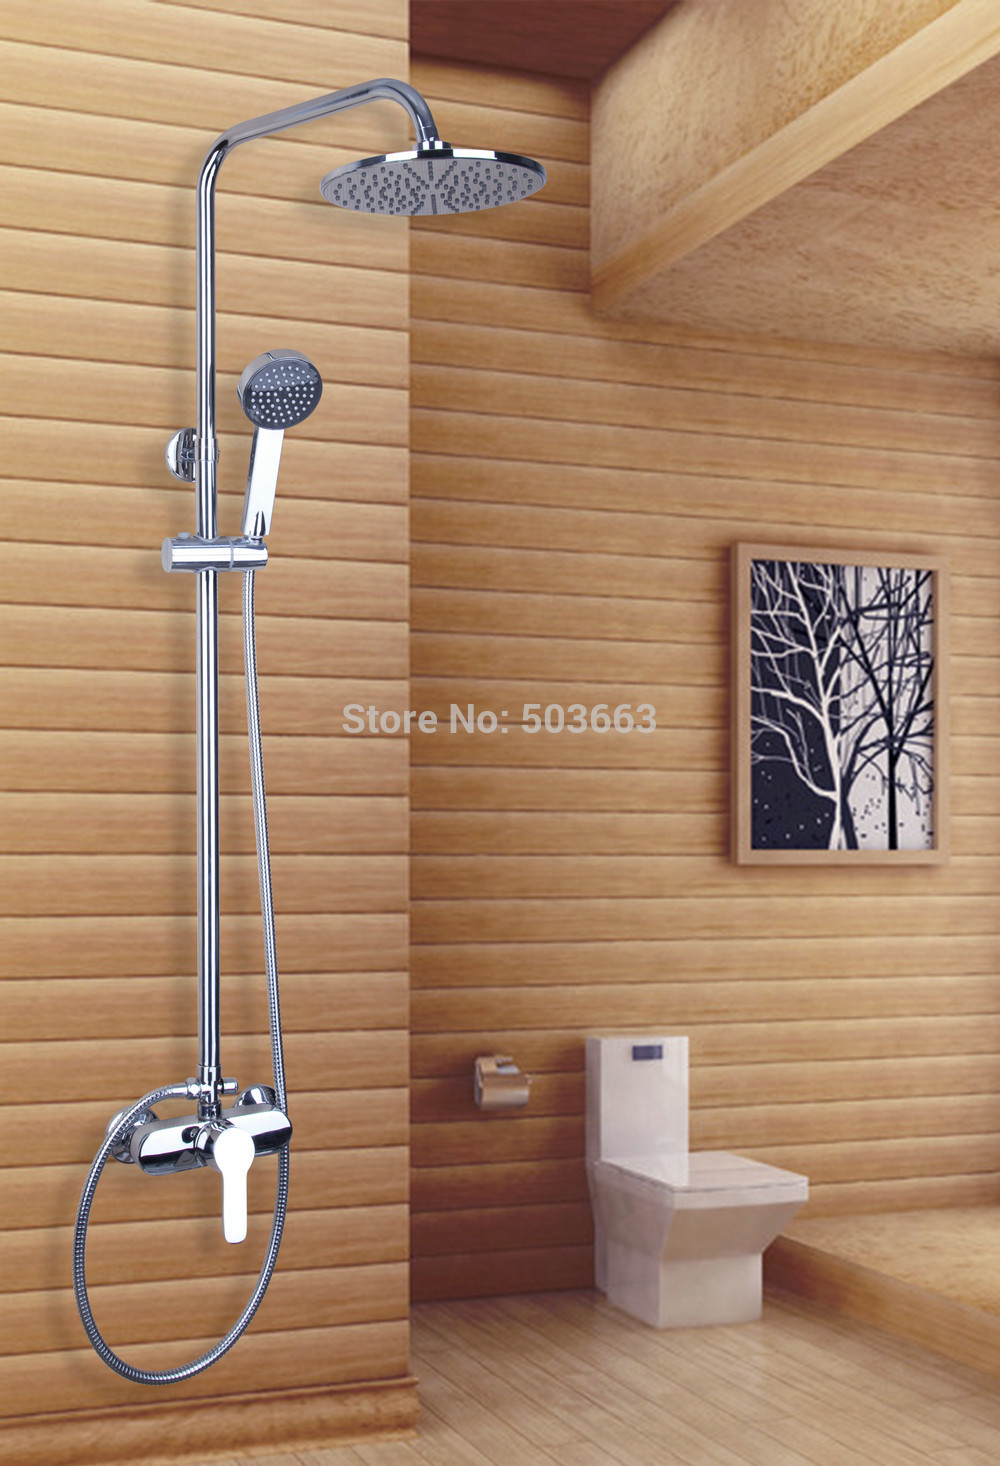 mixer square rain massage led panel shower way in system kit faucets luxury bathroom bath from thermostatic mist home head systems set